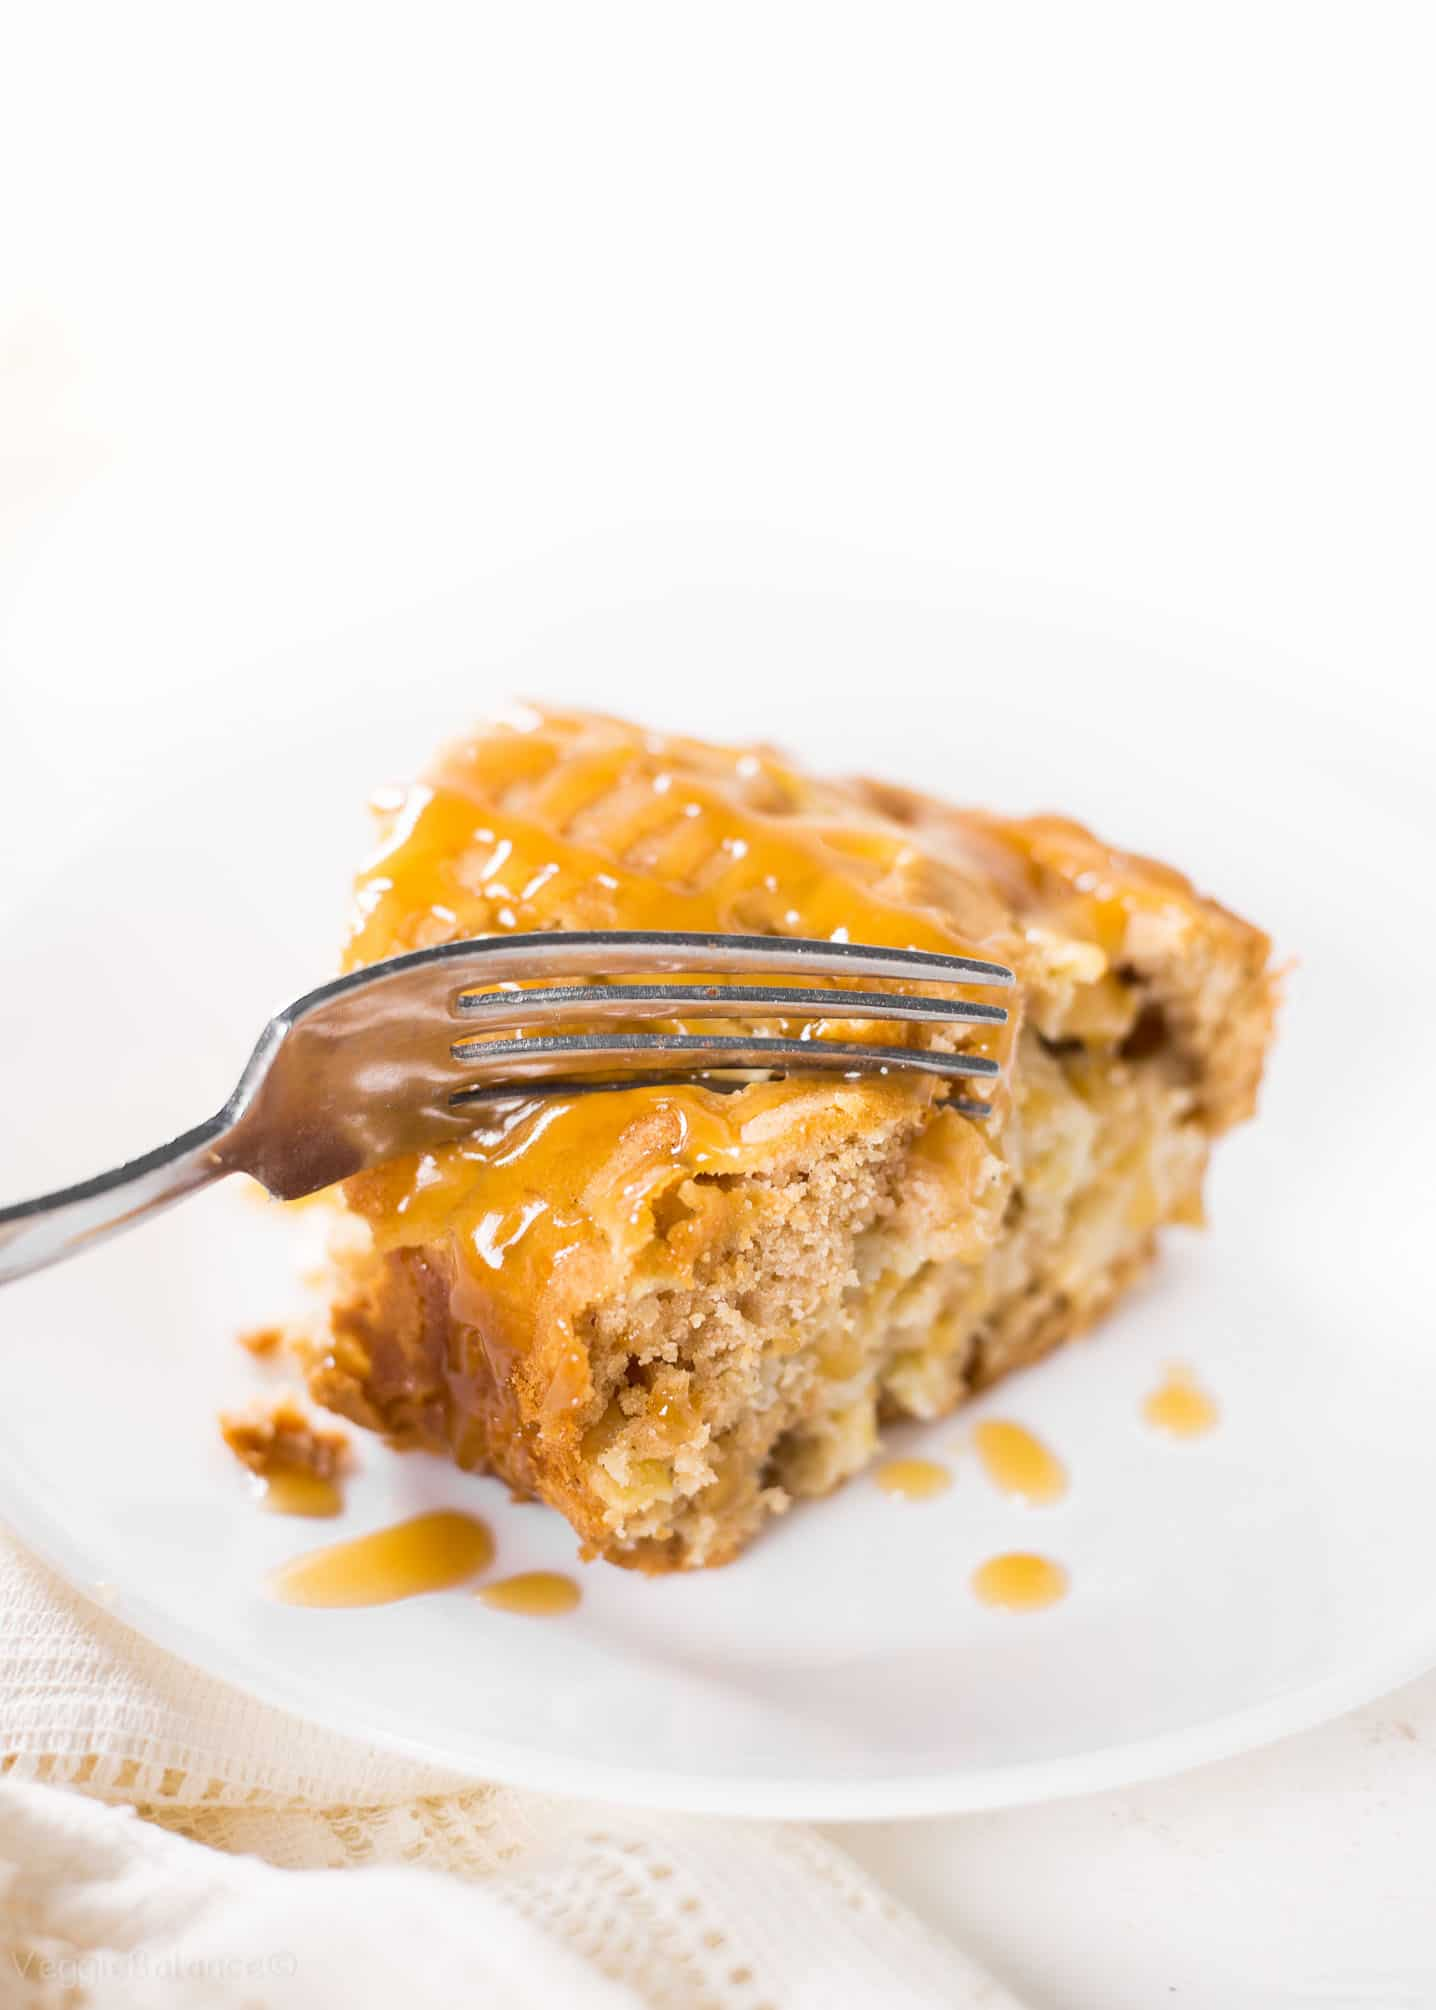 Gluten-Free Apple Coffee Cake with Homemade Caramel Sauce